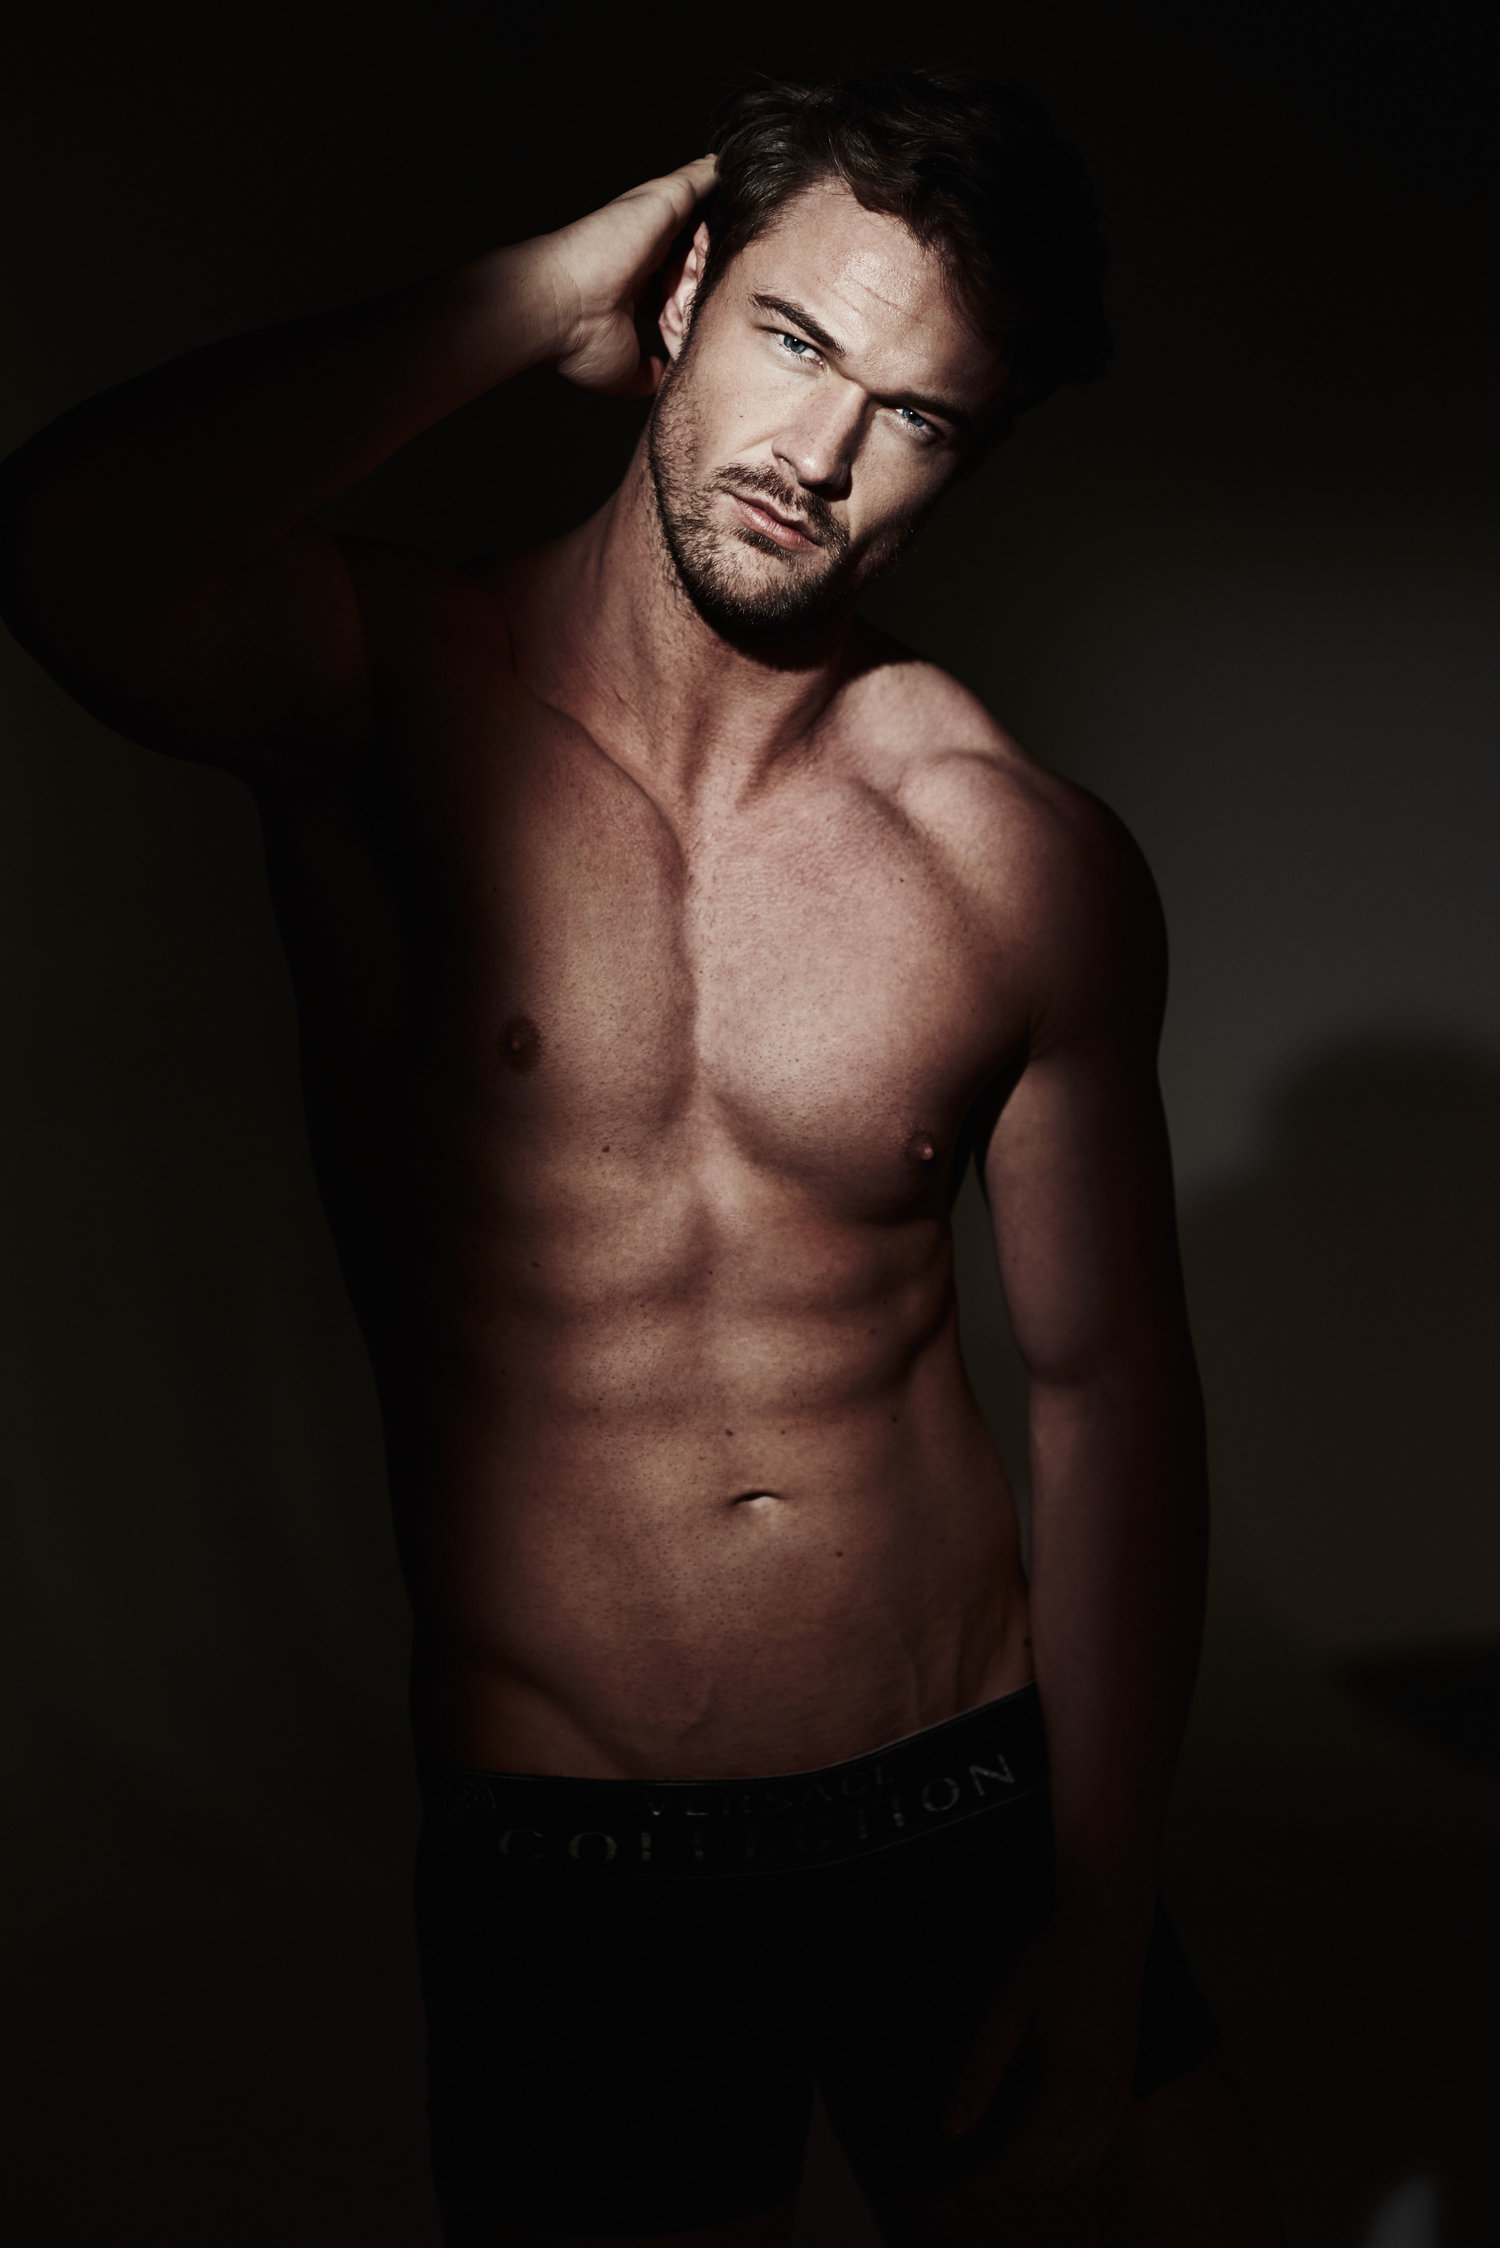 Adon Exclusive: Model Oliver Hines By Specular